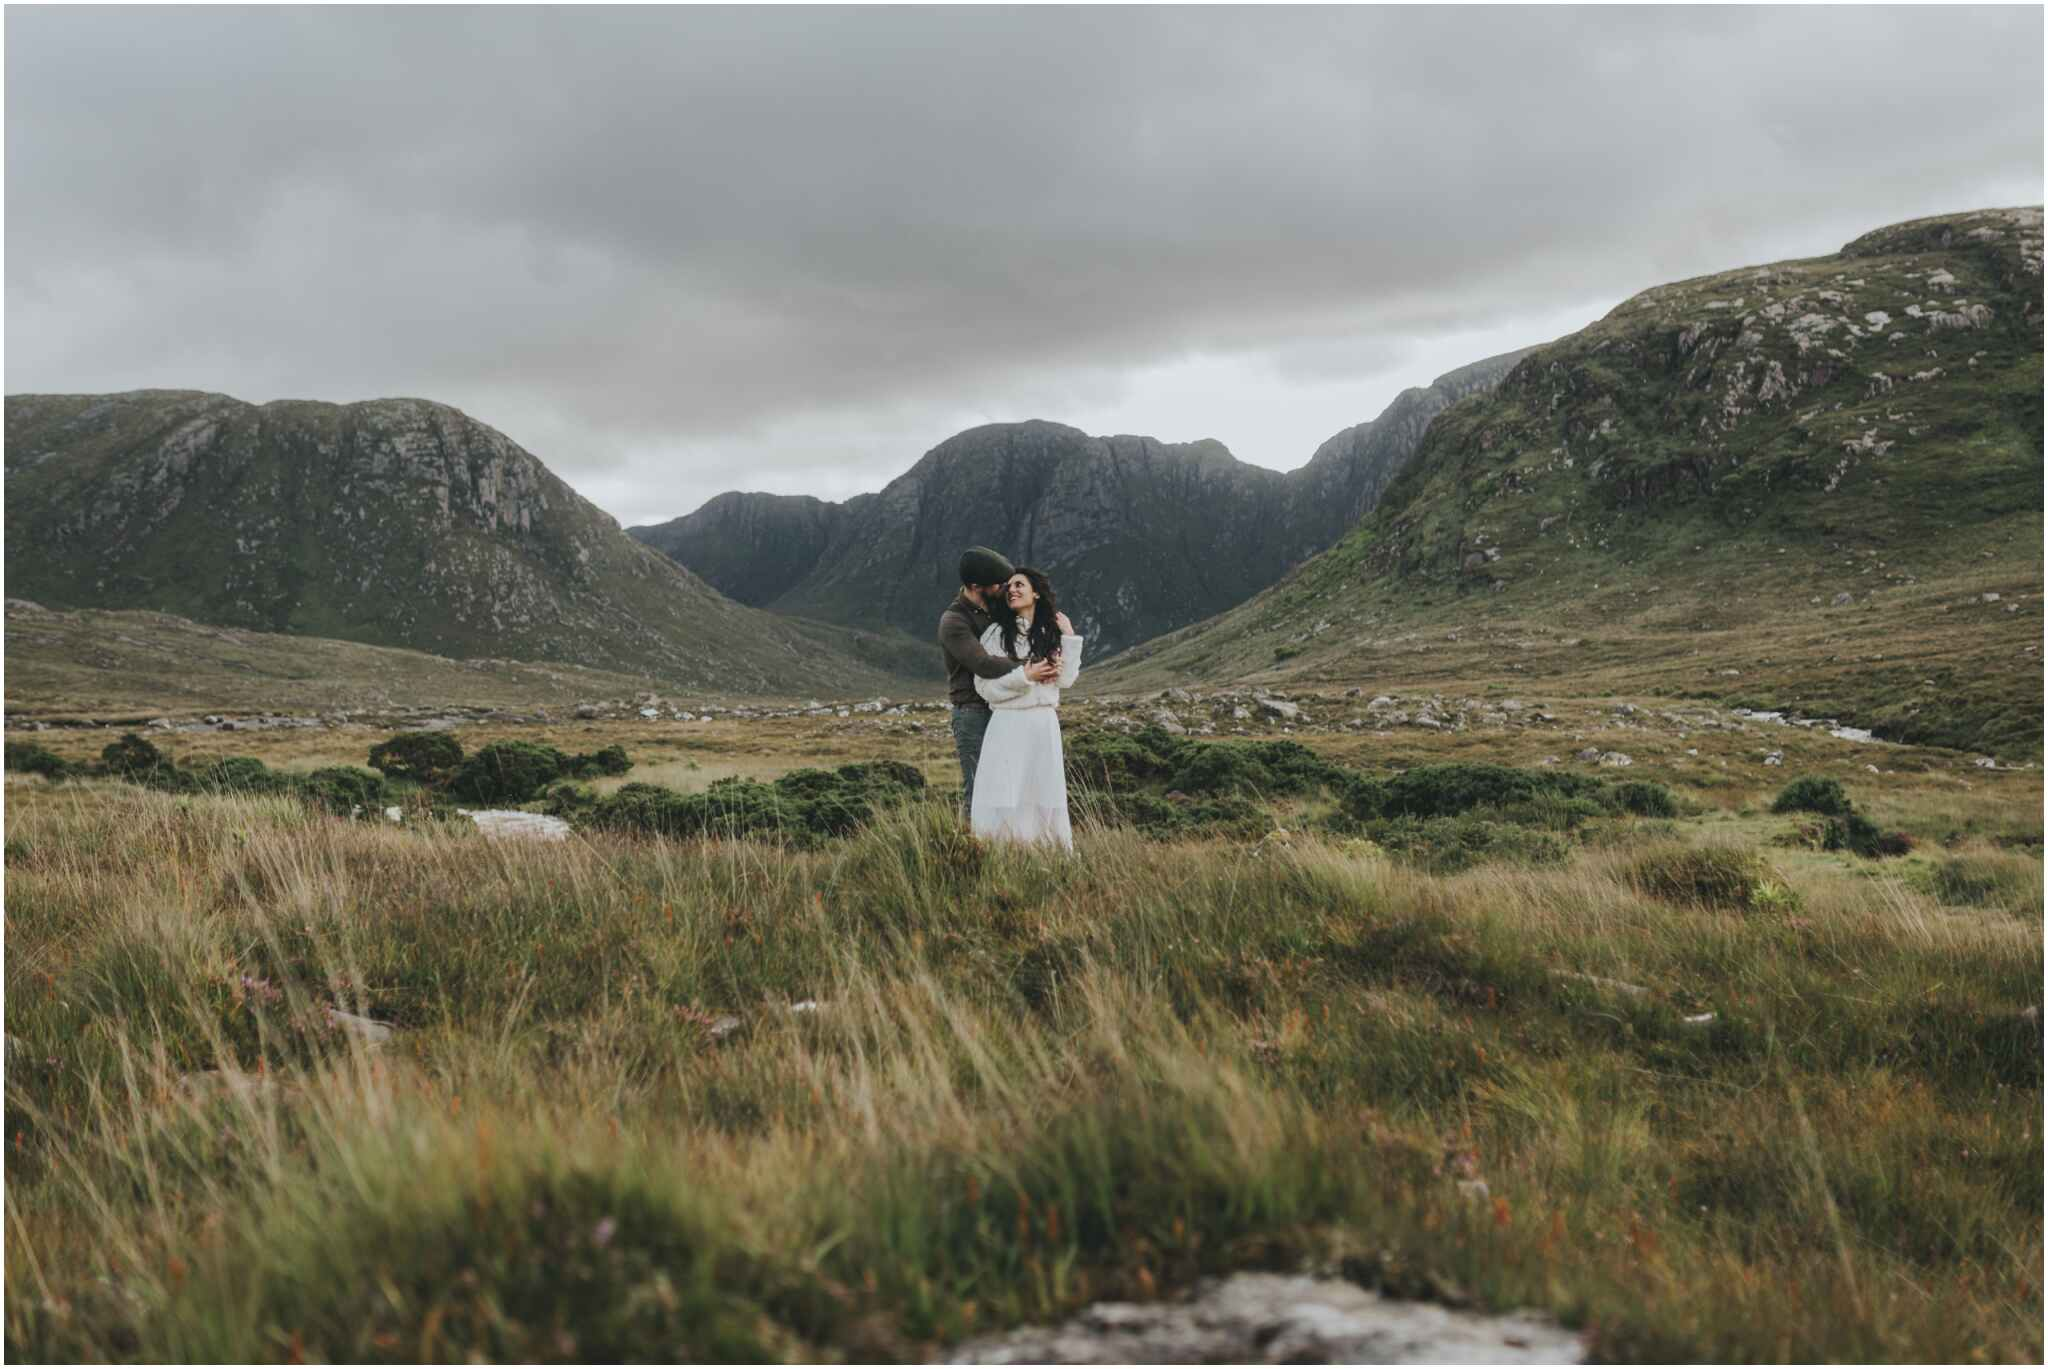 Rachel + David - Hiking Elopement in Muckish Mountain and Poisoned Glen, Donegal 43